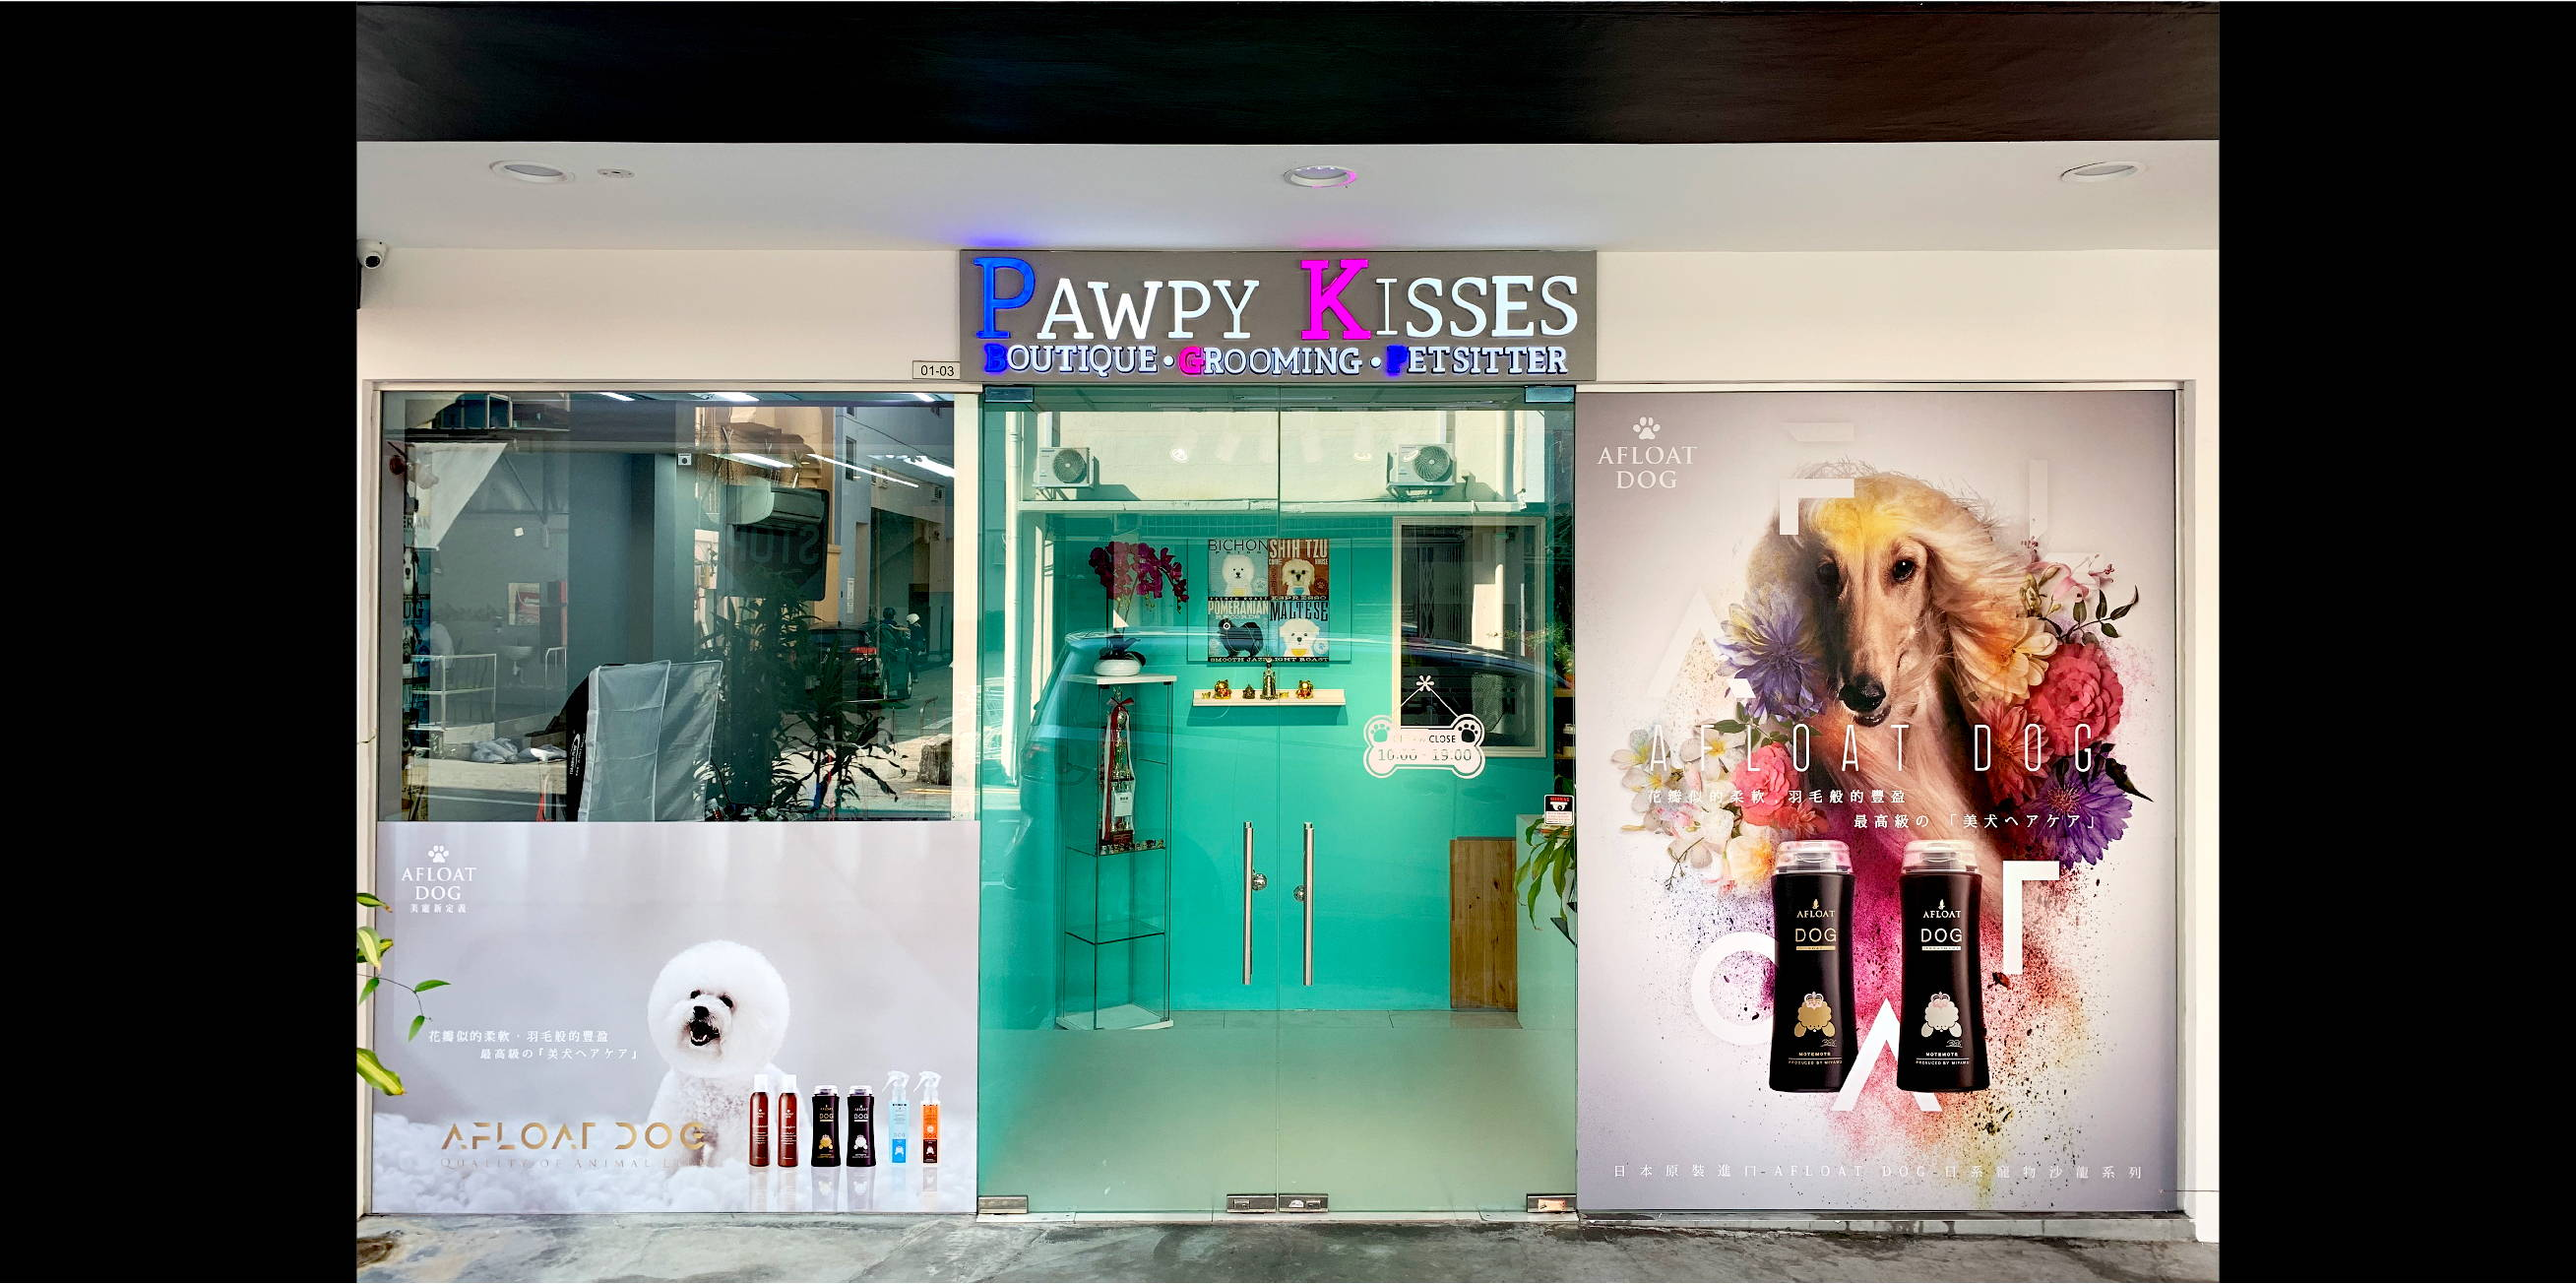 Pawpy Kisses Pet Grooming Exterior